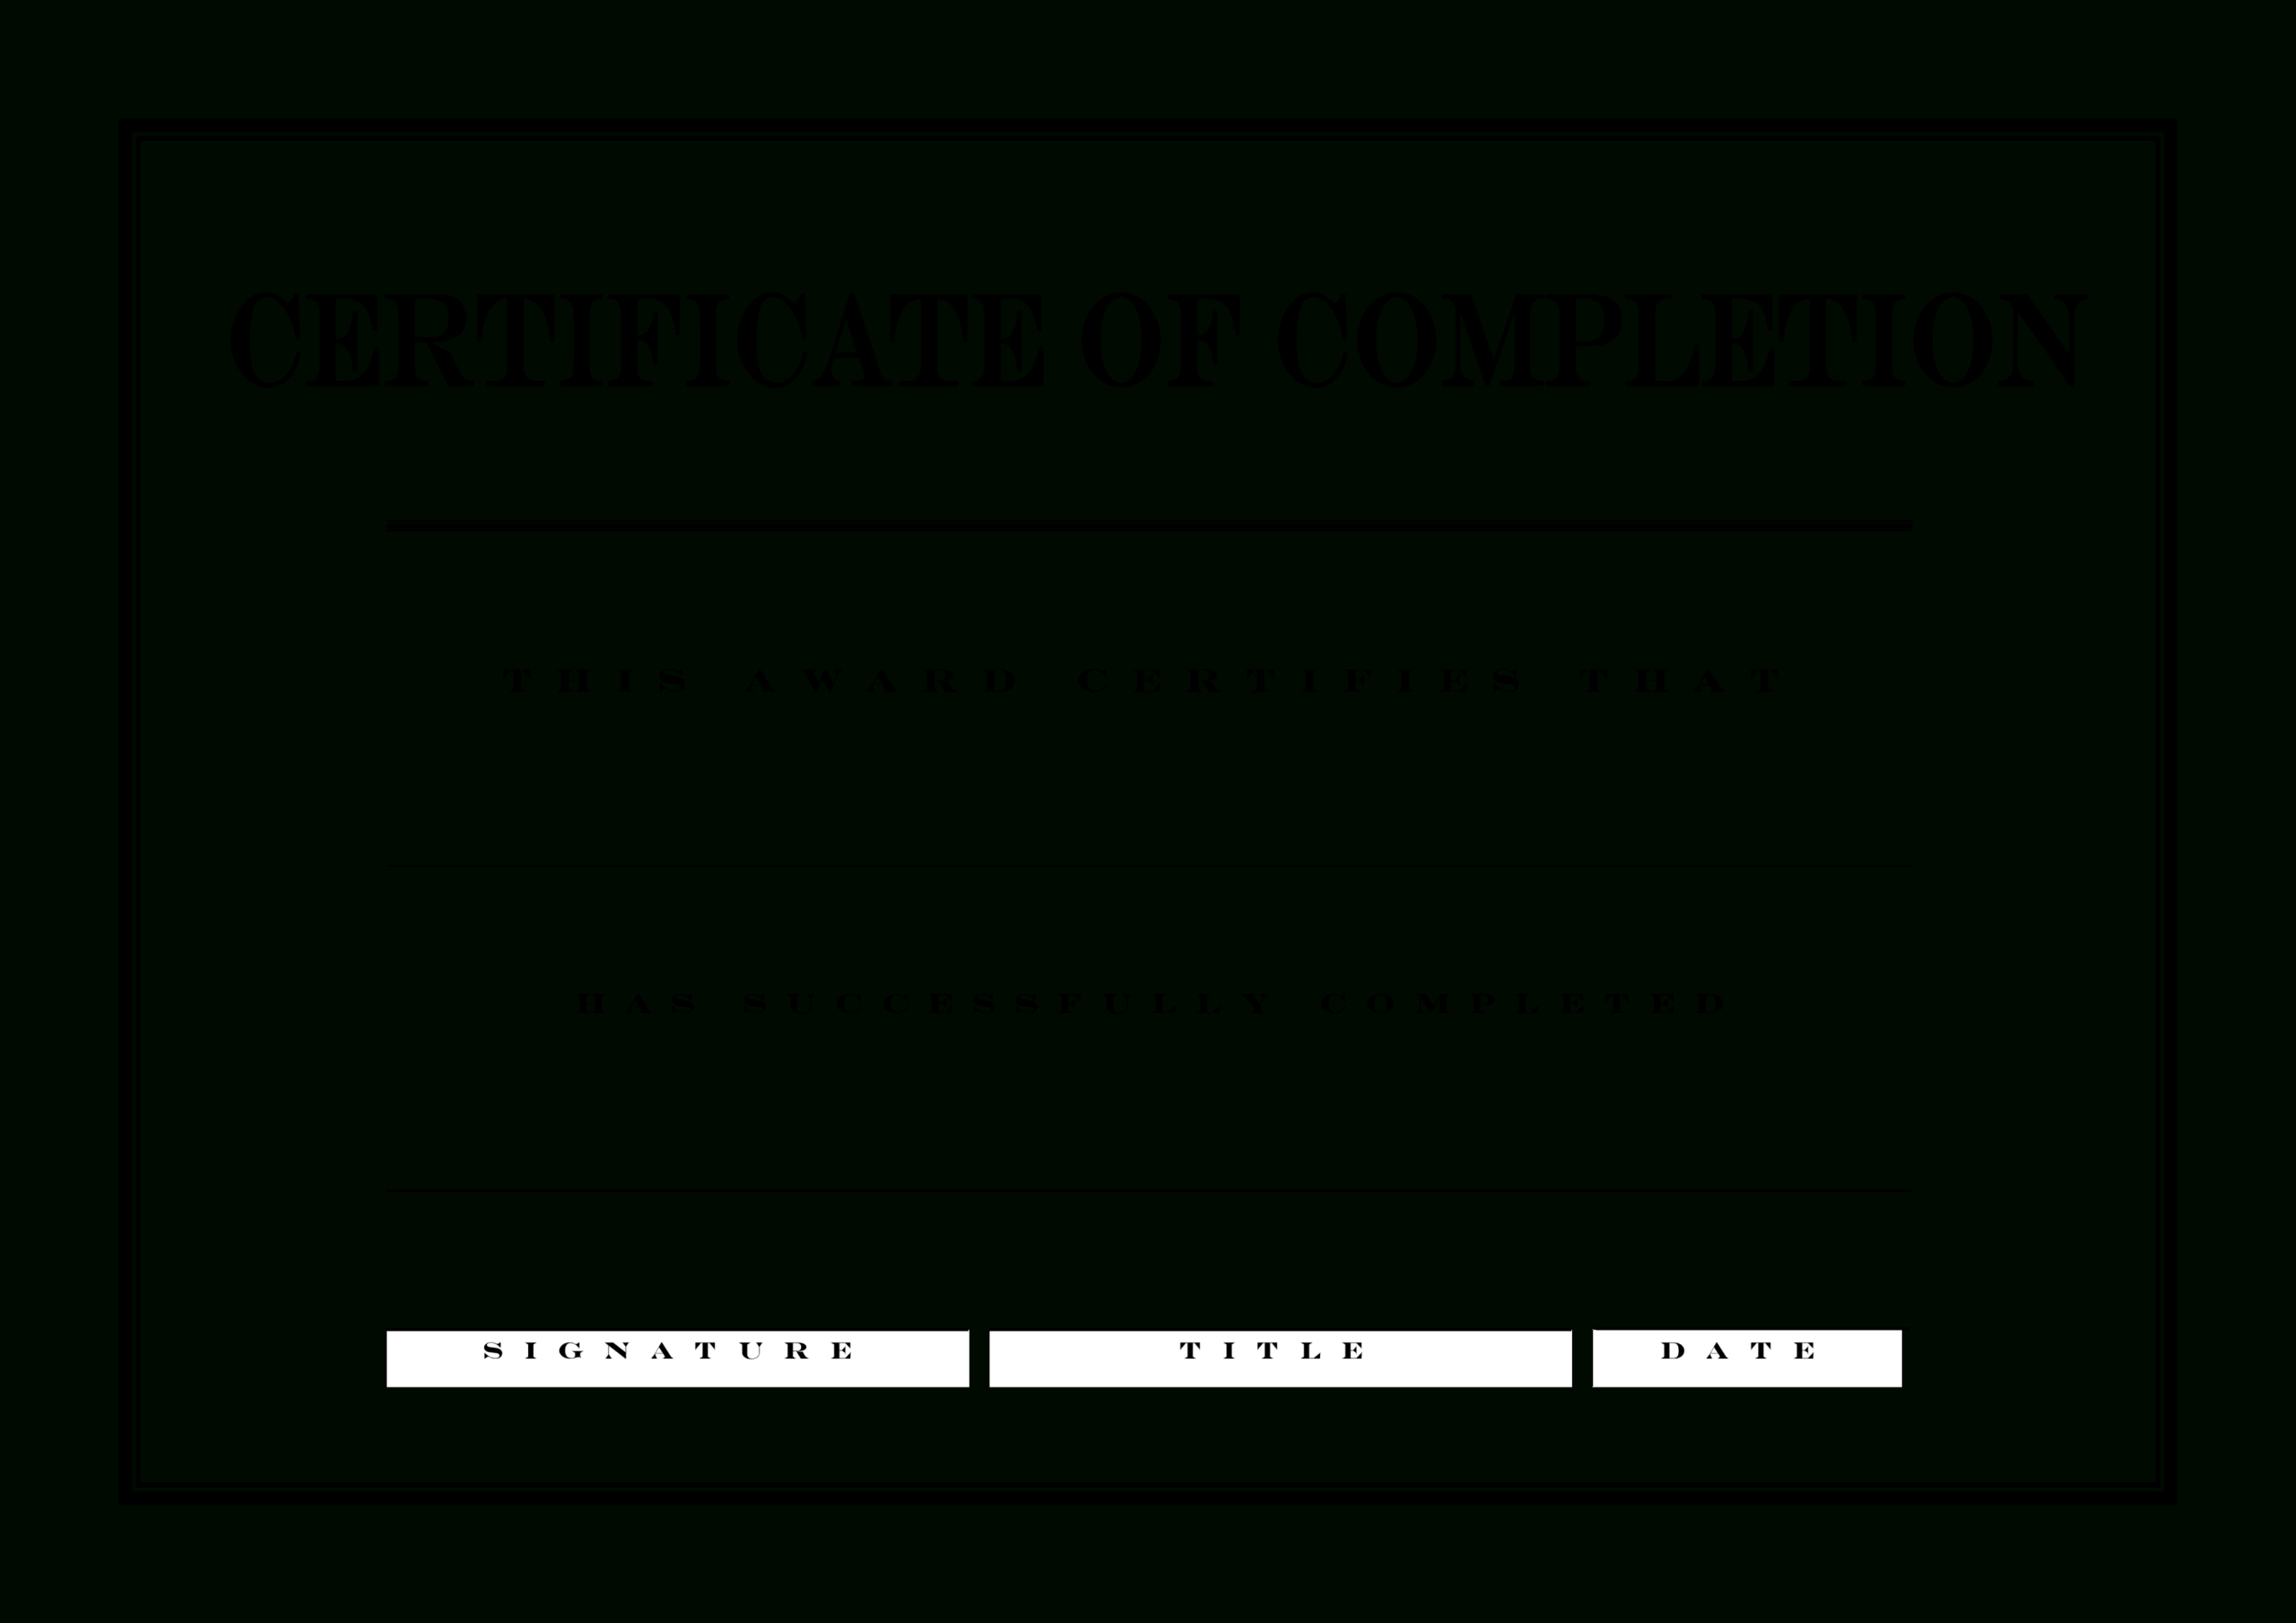 Certificate Of Completion | Templates At Allbusinesstemplates Inside Blank Certificate Of Achievement Template